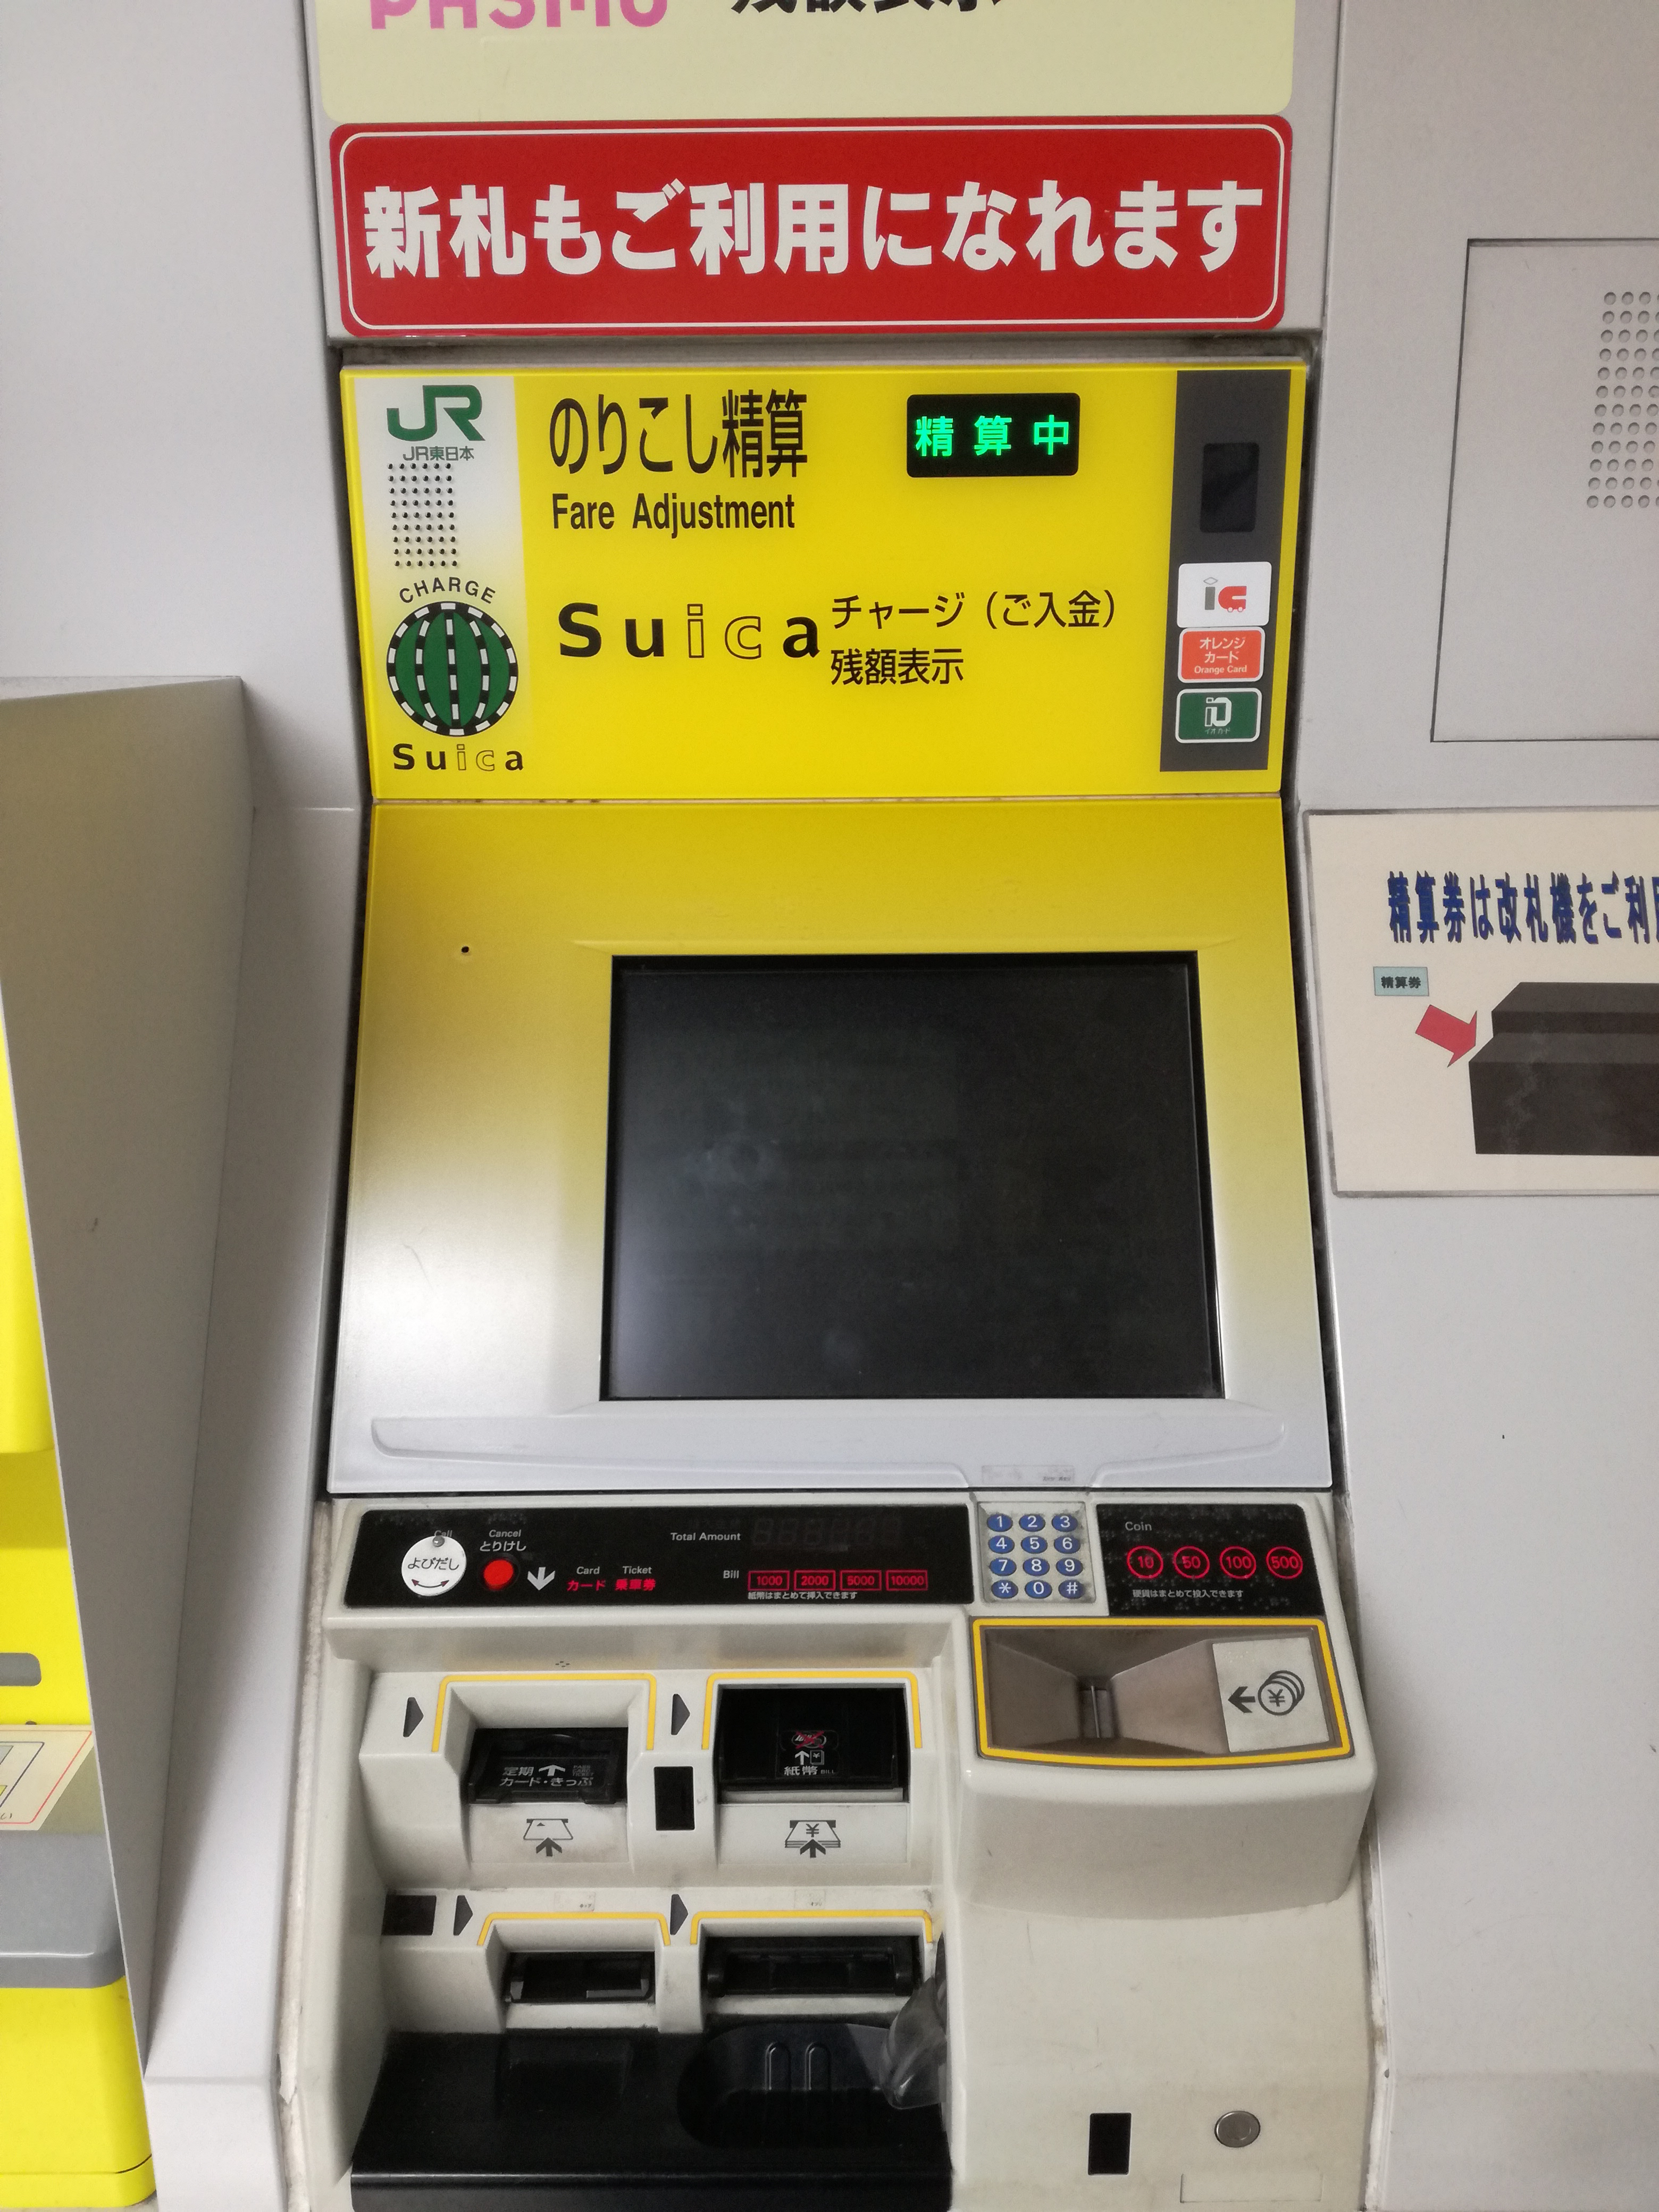 fare adjustment machine